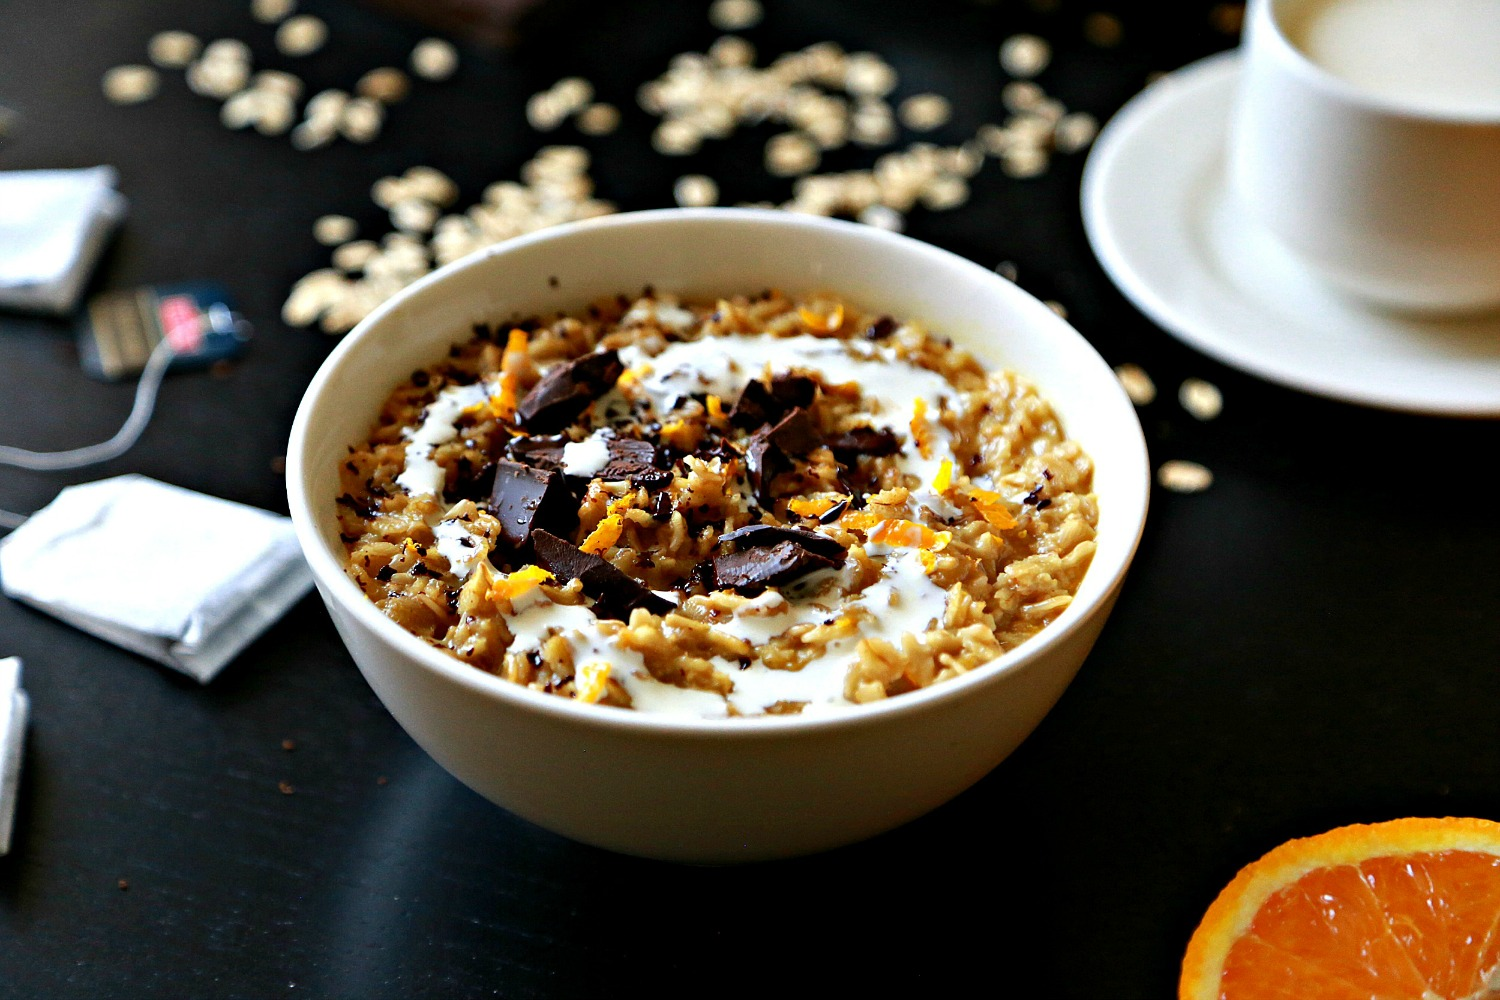 Earl grey orange oatmeal